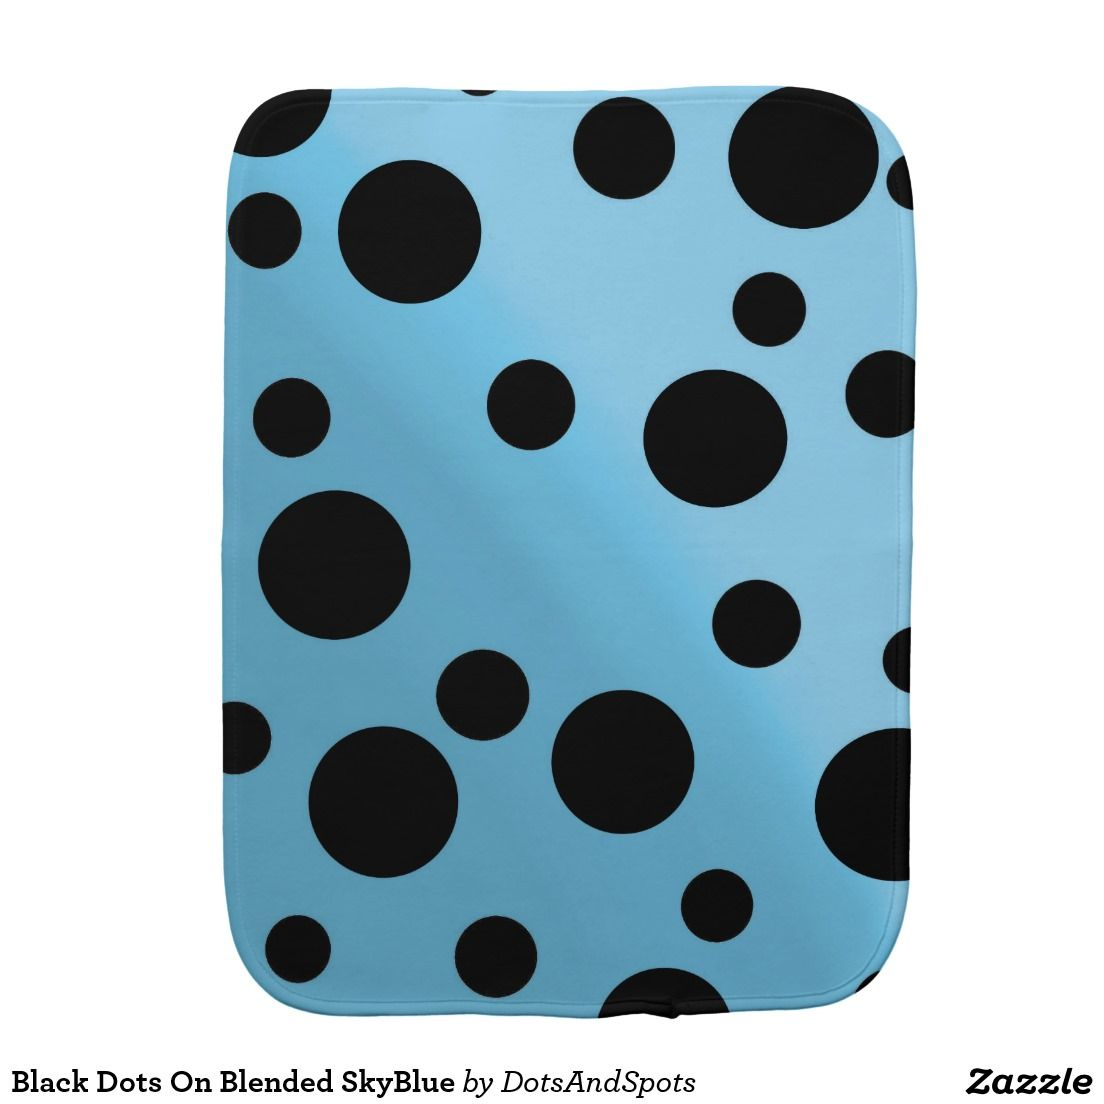 Black Dots On Blended SkyBlue Baby Burp Cloth